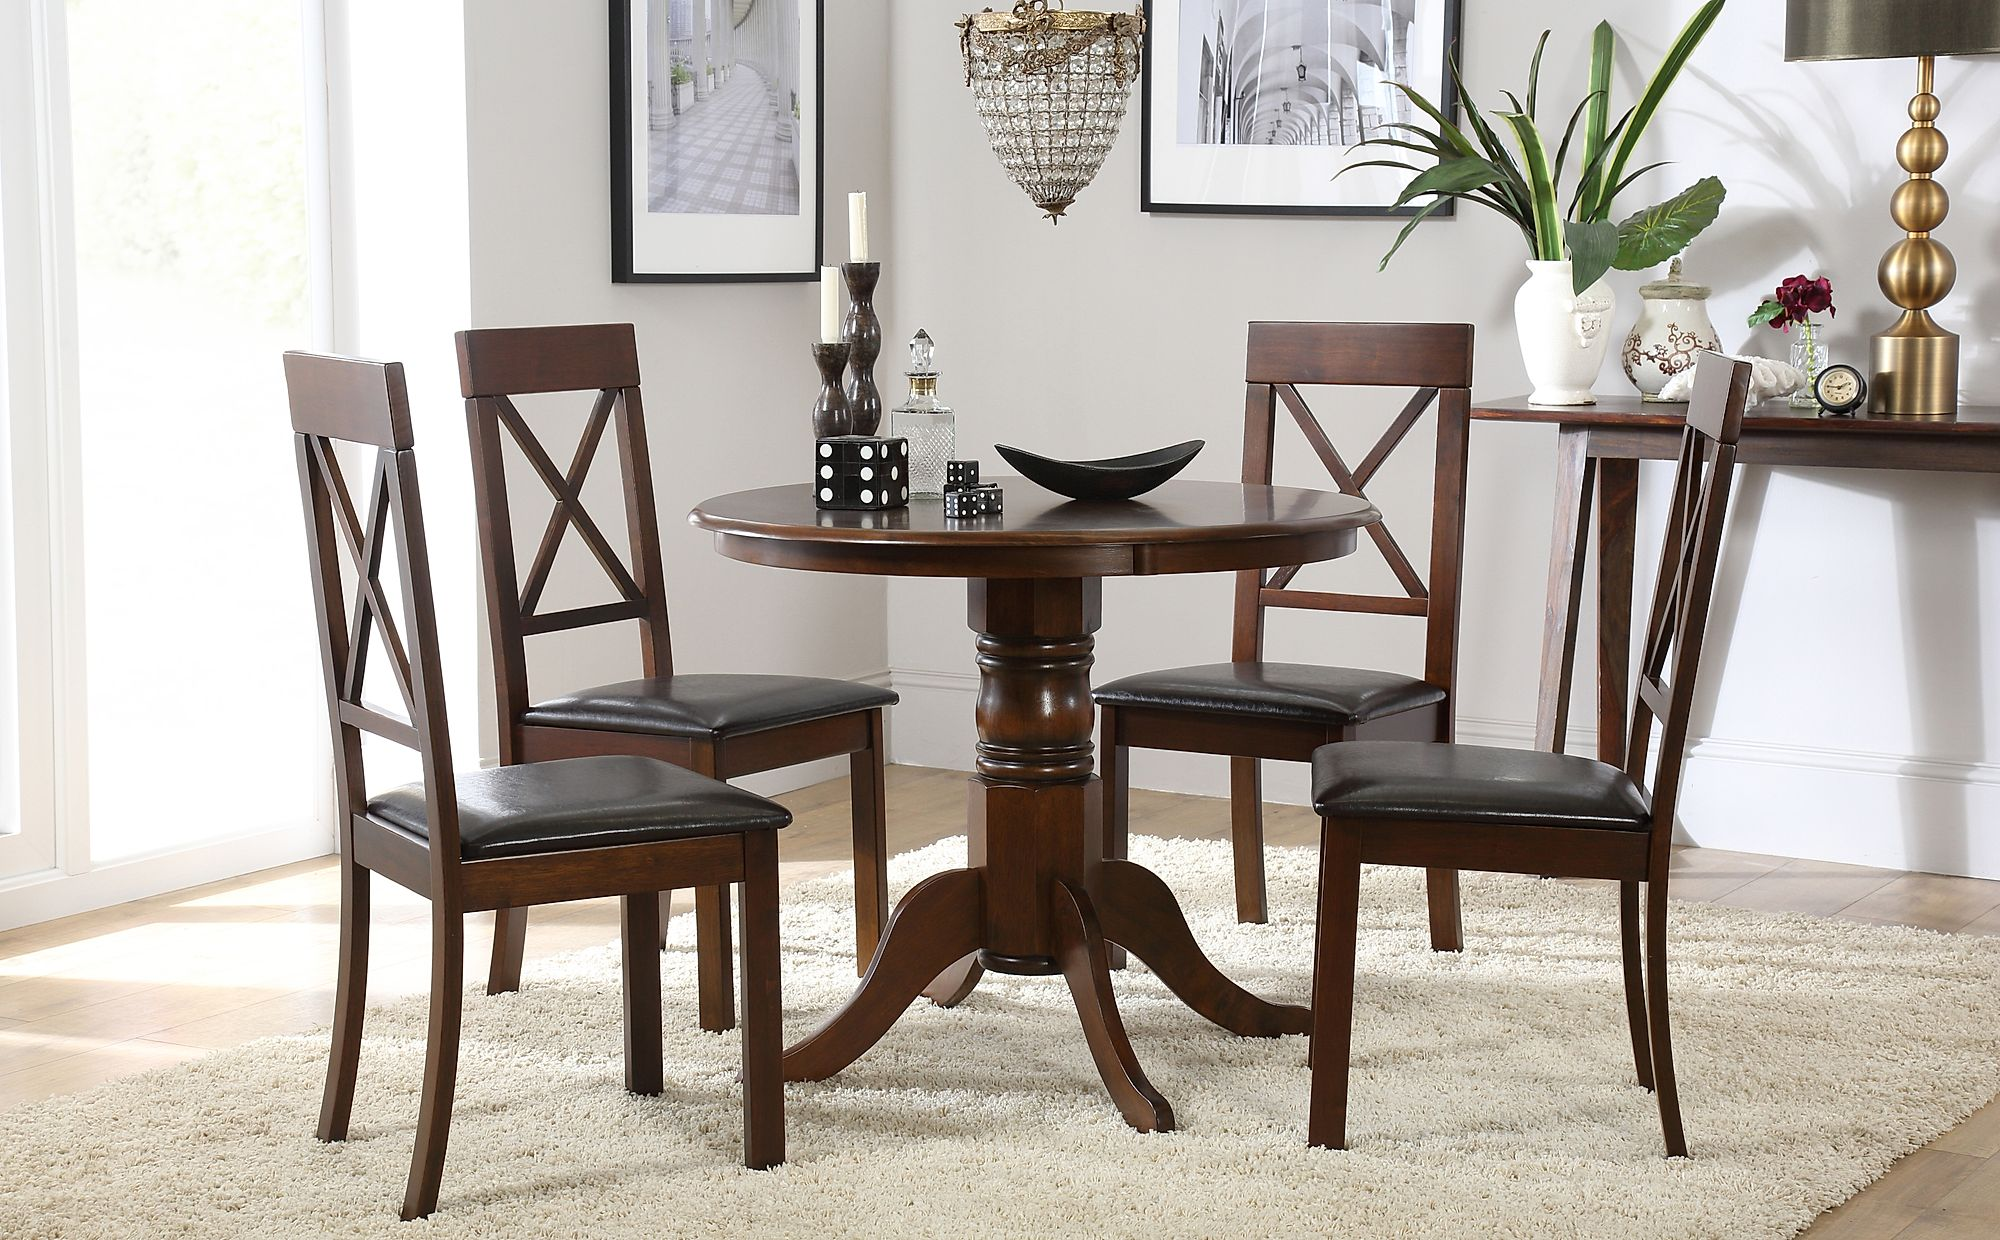 Kingston Round Dark Wood Dining Table with 4 Kendal Chairs ...